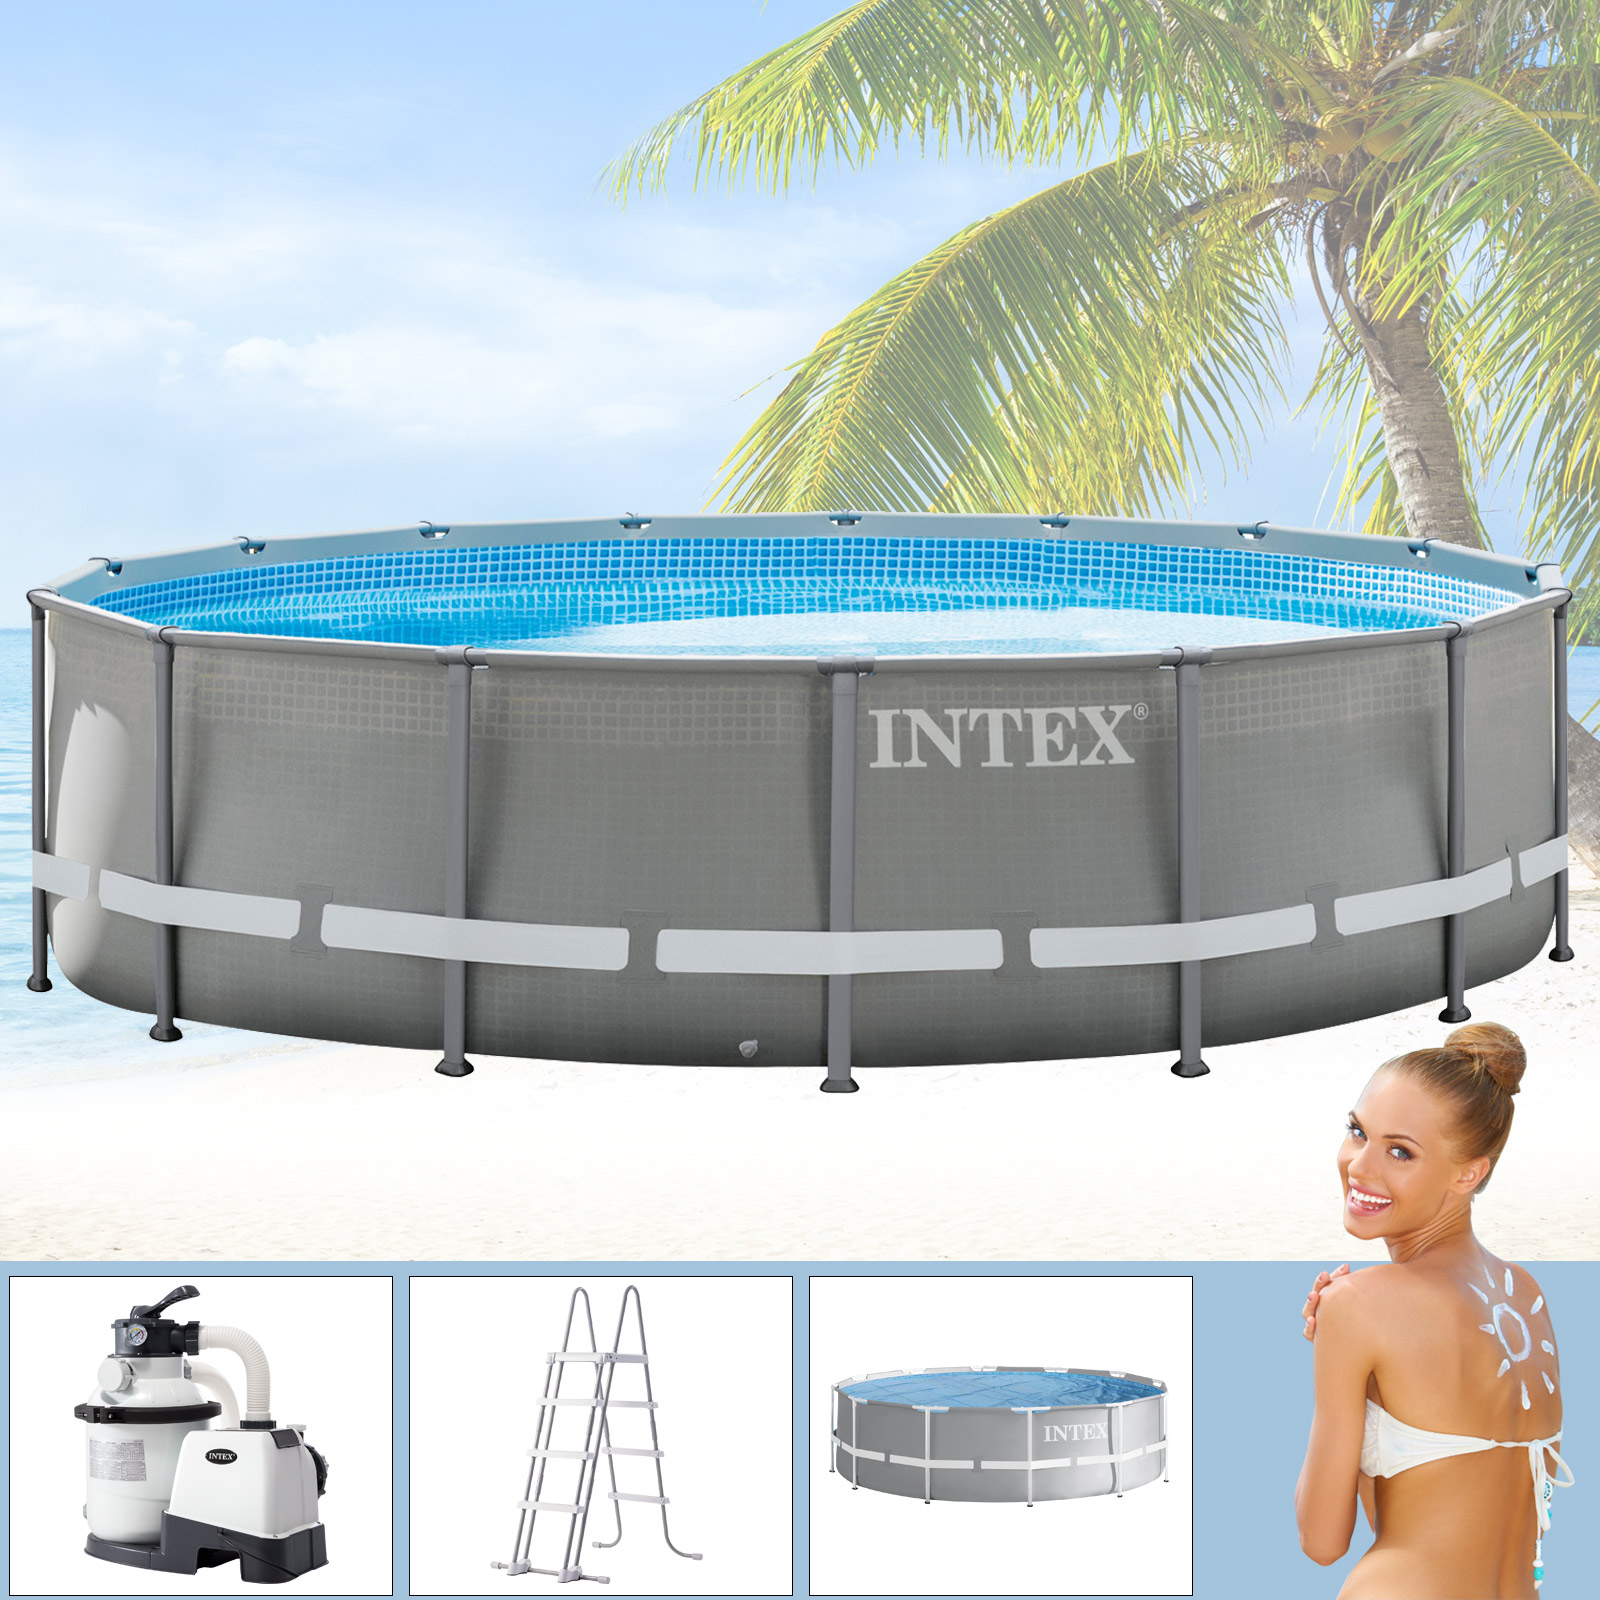 Solarfolie Für Pool Intex 488x122 Cm Swimming Pool Frame Set Mit Sandfilter Leiter